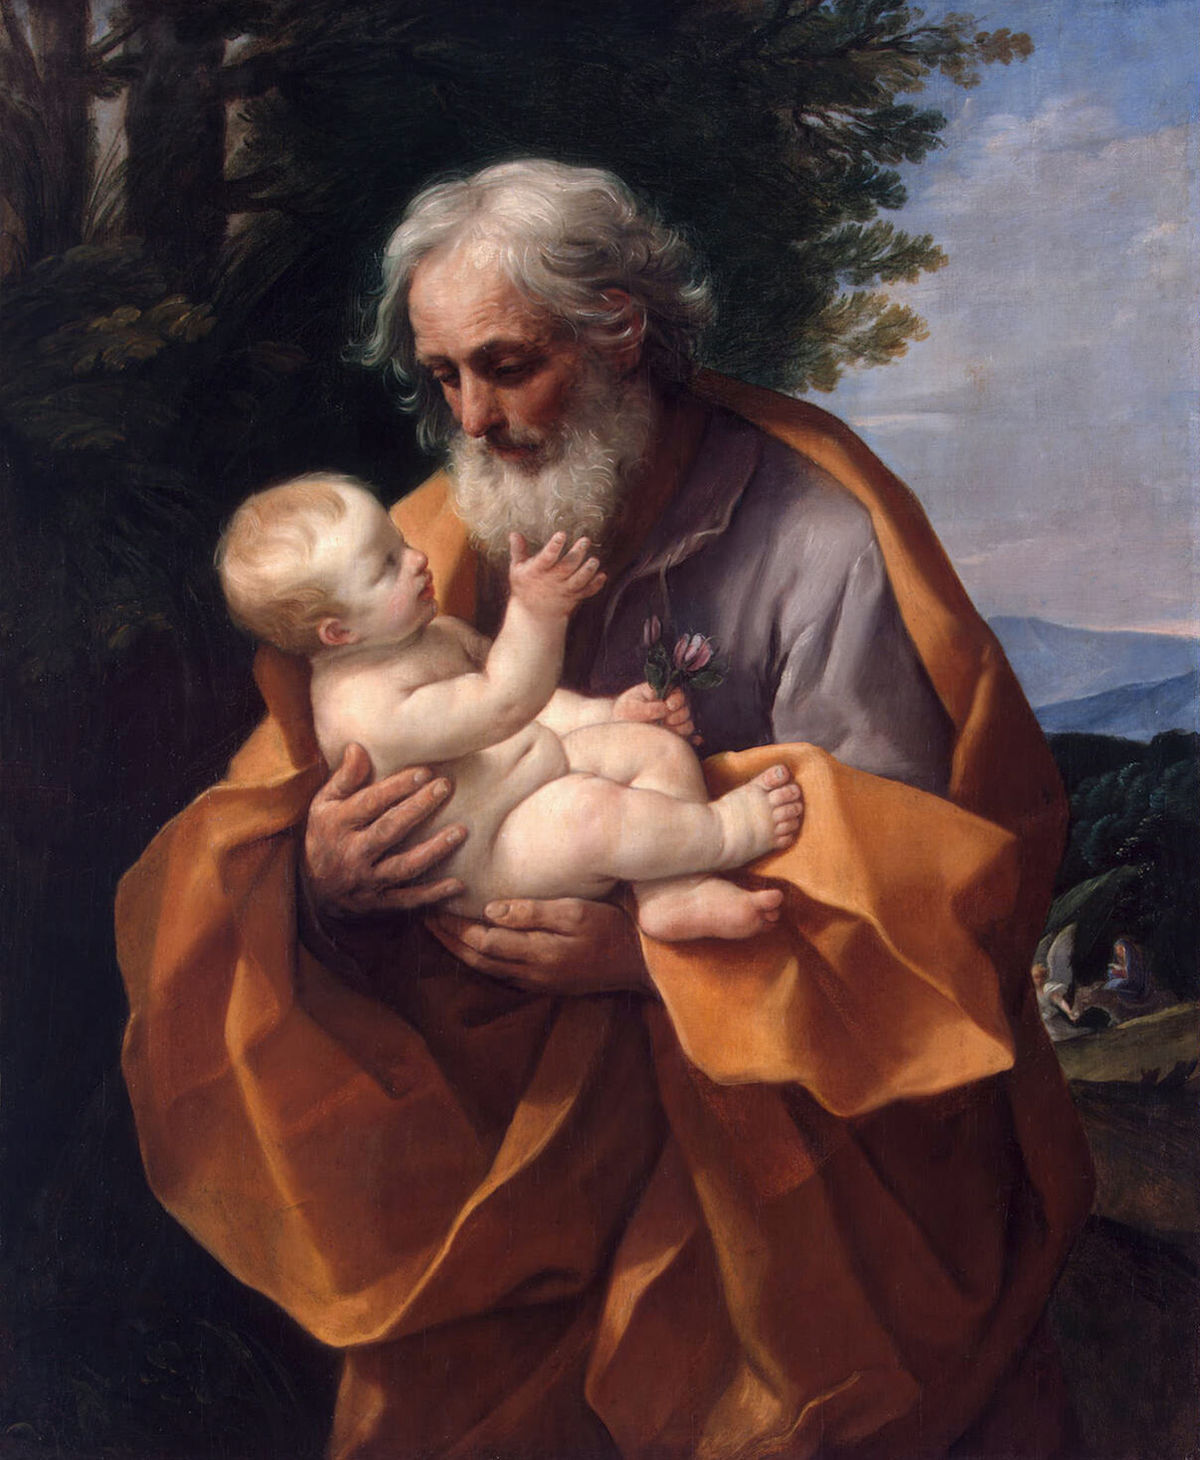 Saint_Joseph_with_the_Infant_Jesus_by_Guido_Reni,_c_1635 (1)